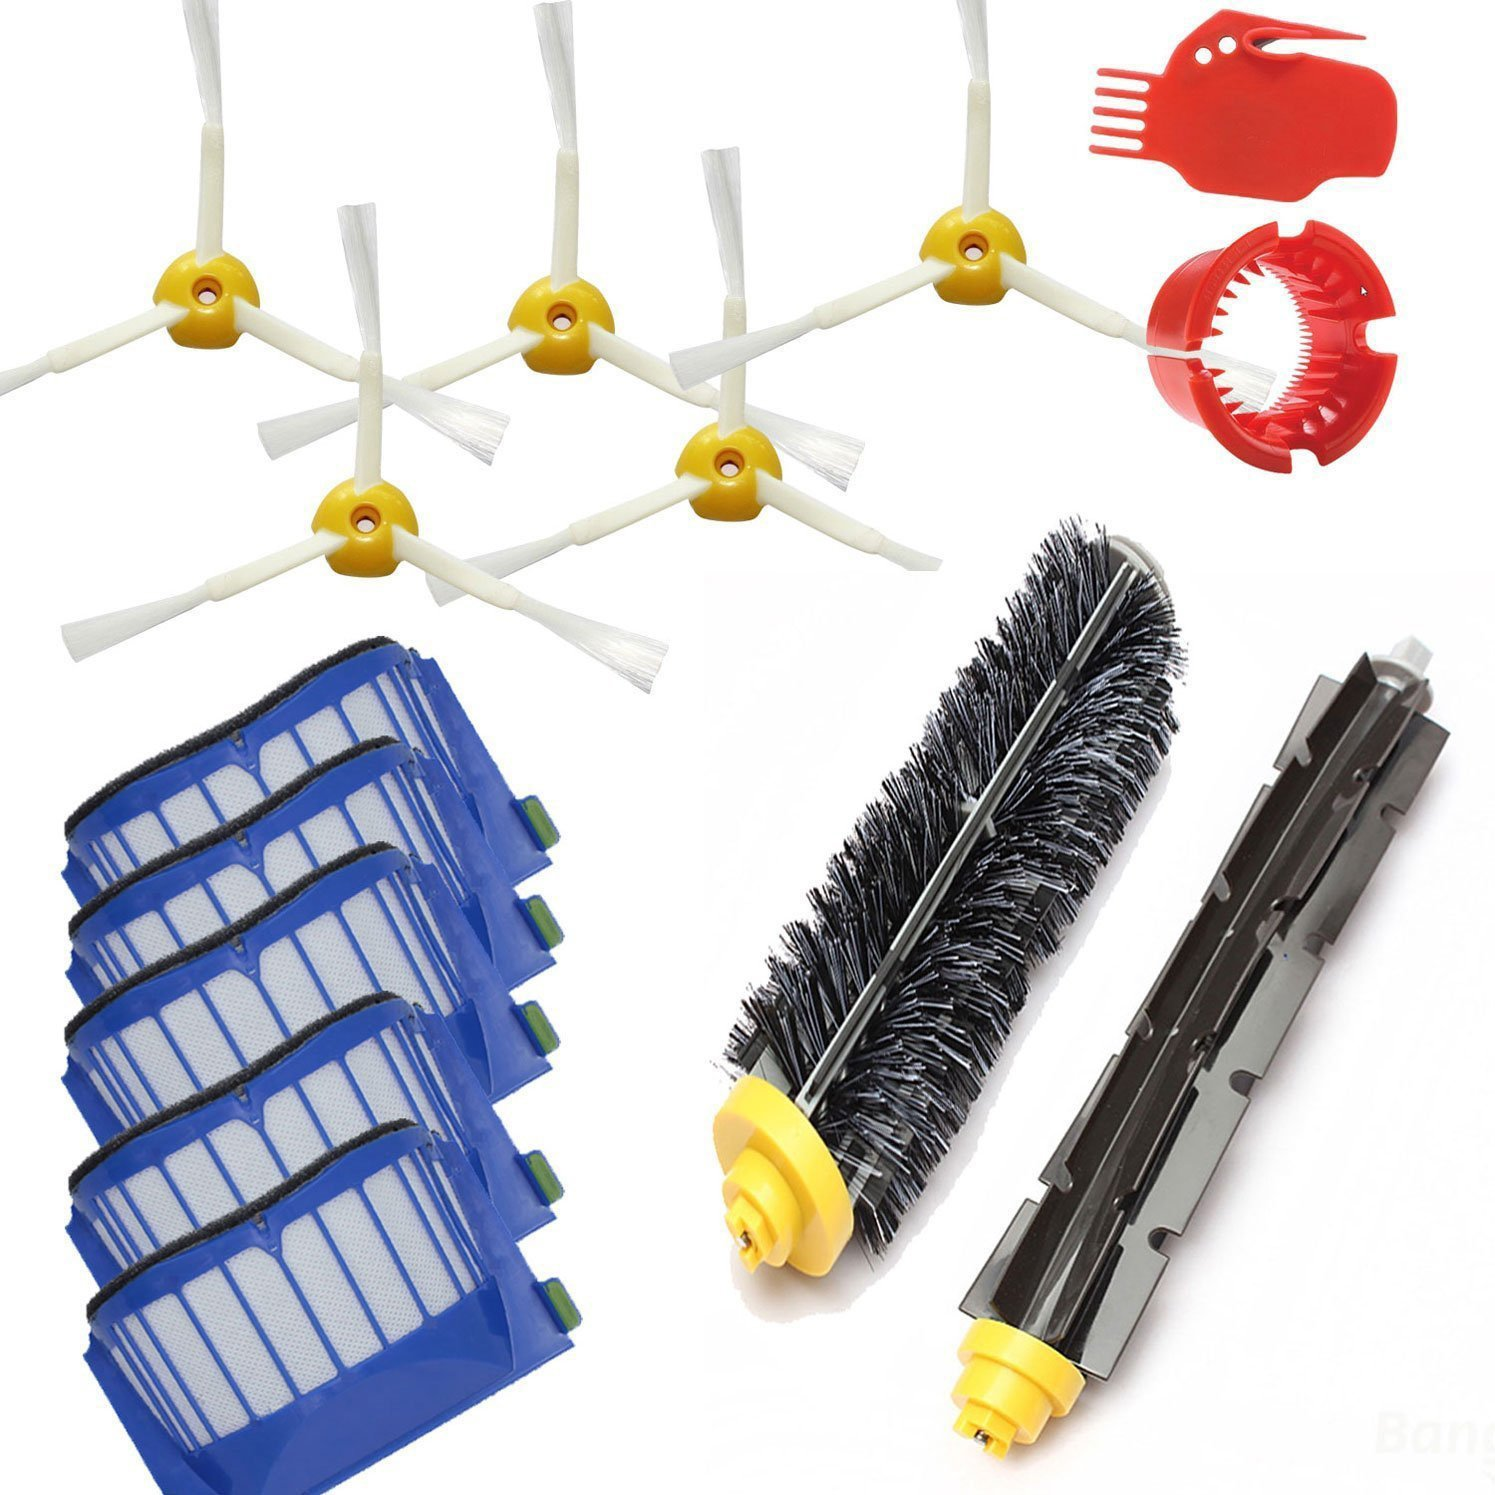 LOVE(TM) AeroVac Filter Hair Brush kit and Side Brush Cleaning Tool for Robot 600 Series 595 620 630 650 660 Vacuum Cleaner Accessories